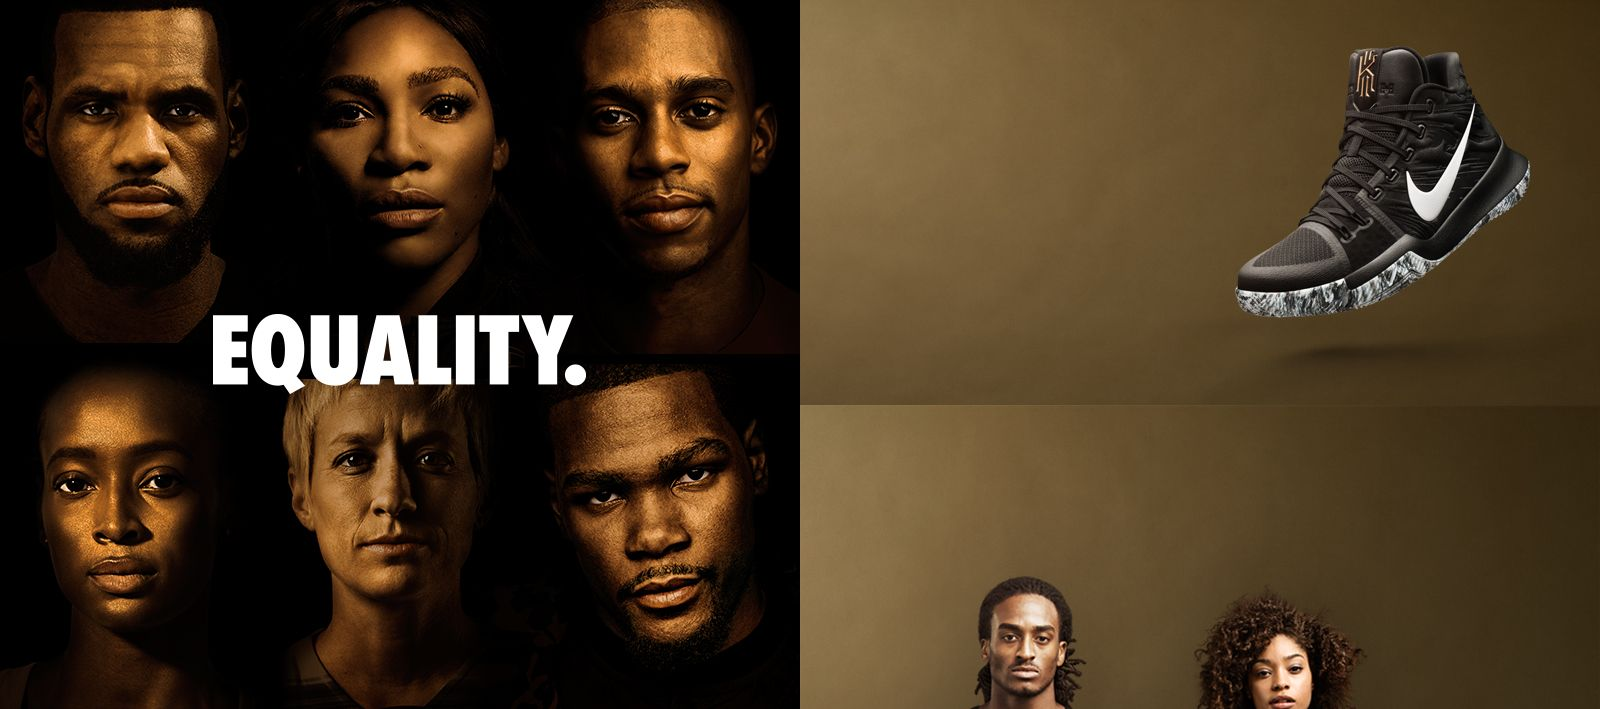 43d9aef24 #Equality is the brand new campaign by Nike, which encourages users to show  their support on social media by downloading the equality ...